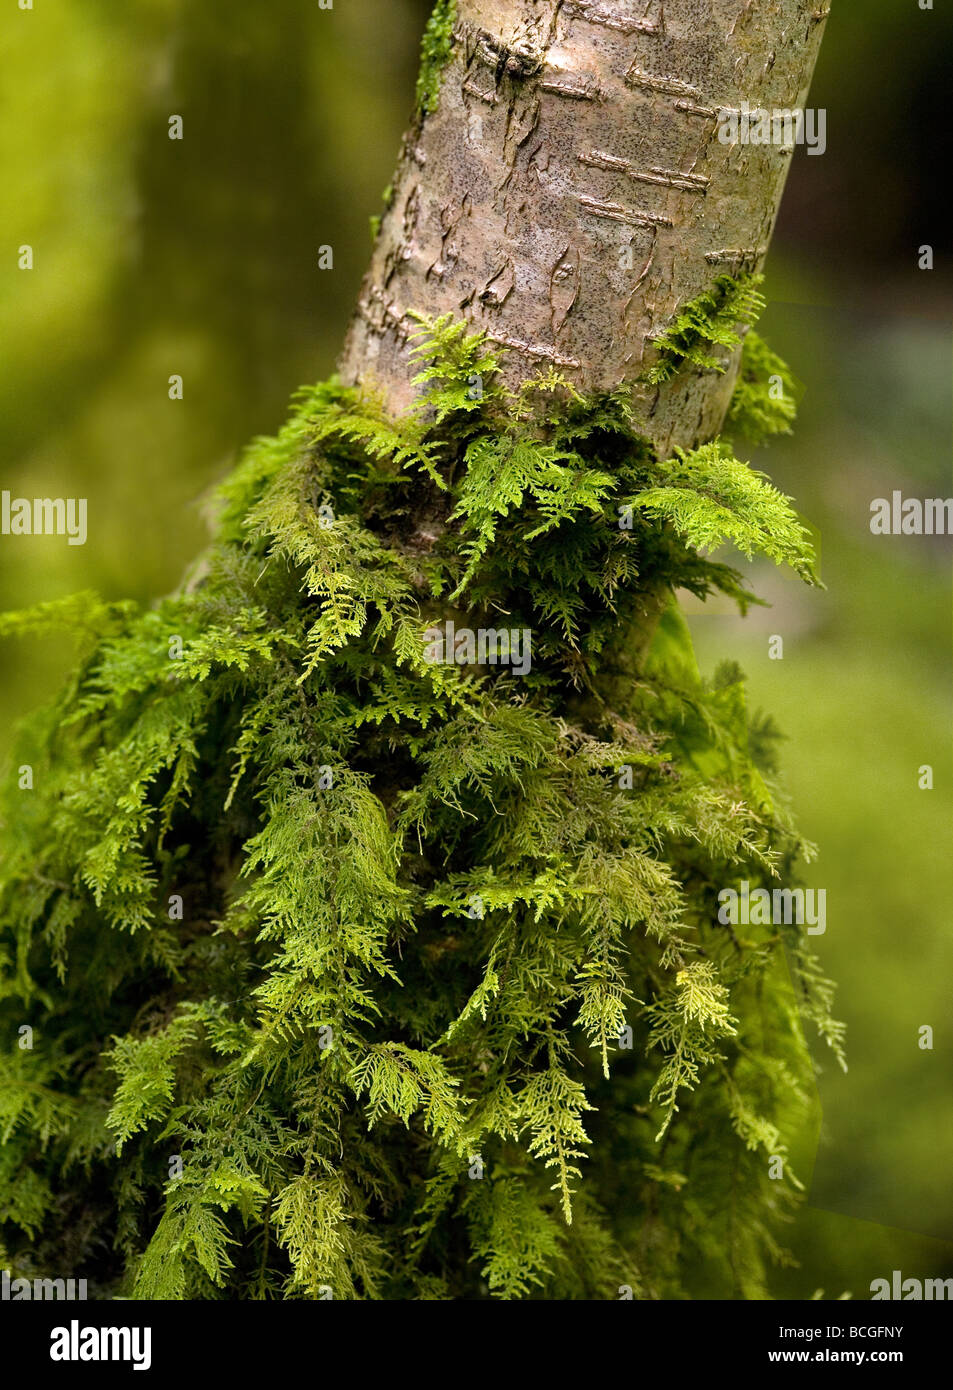 Moss Thuidium tamariscinum growing up the trunk of a small tree in moist woodland - Stock Image